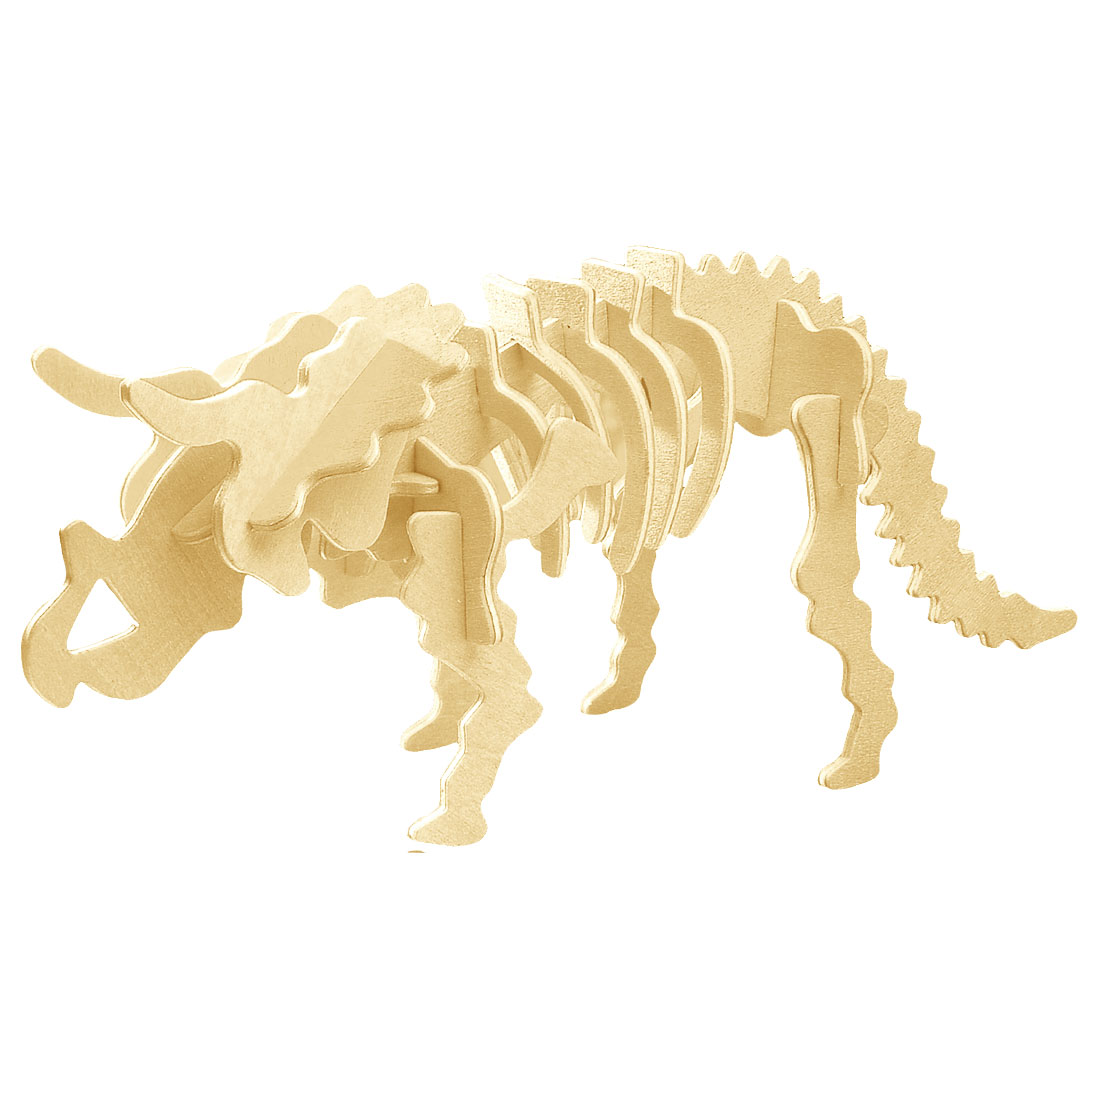 3D Wood Triceratops Design Woodcraft Construction Kit Assembling Puzzle Toy